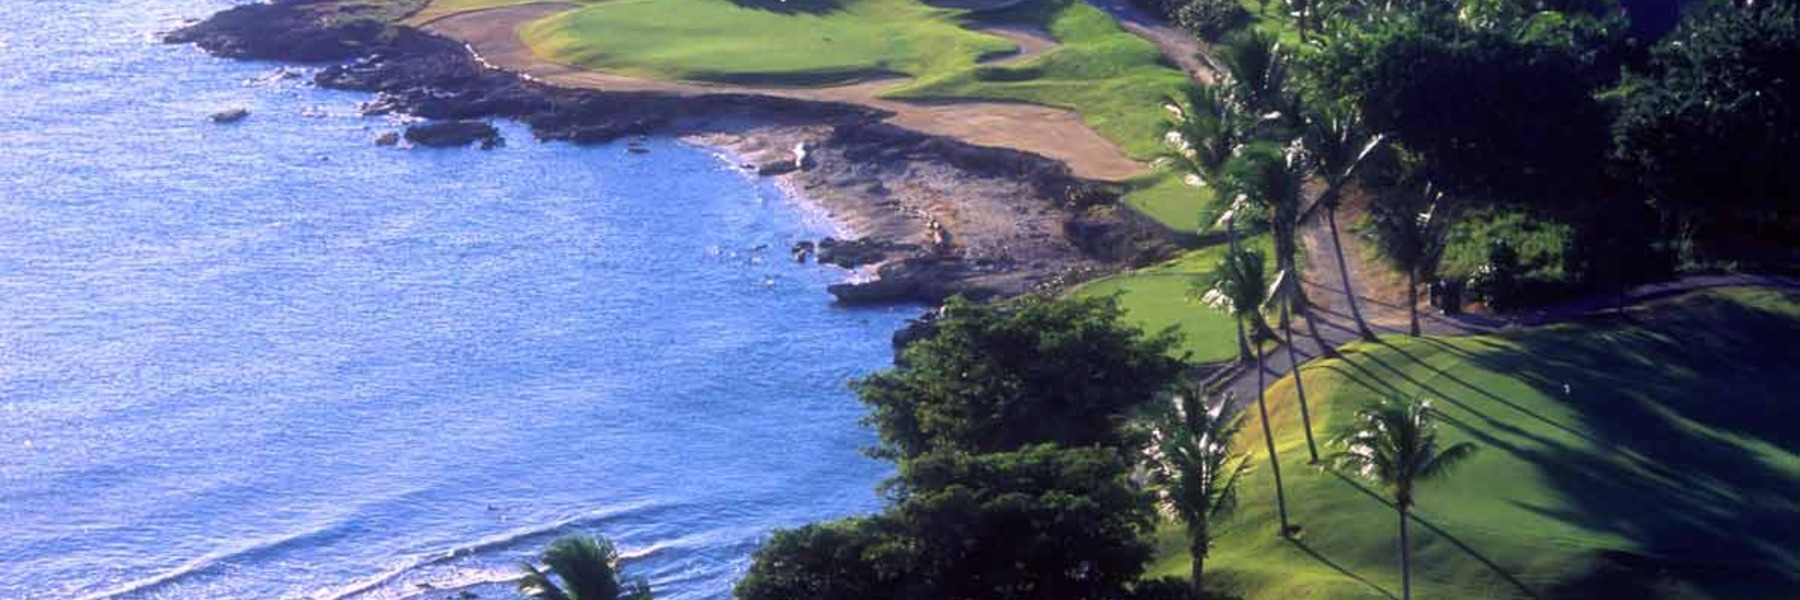 Golf Vacation Package - Getaway to Casa de Campo / Teeth of the Dog Stay & Play for $364 per day!